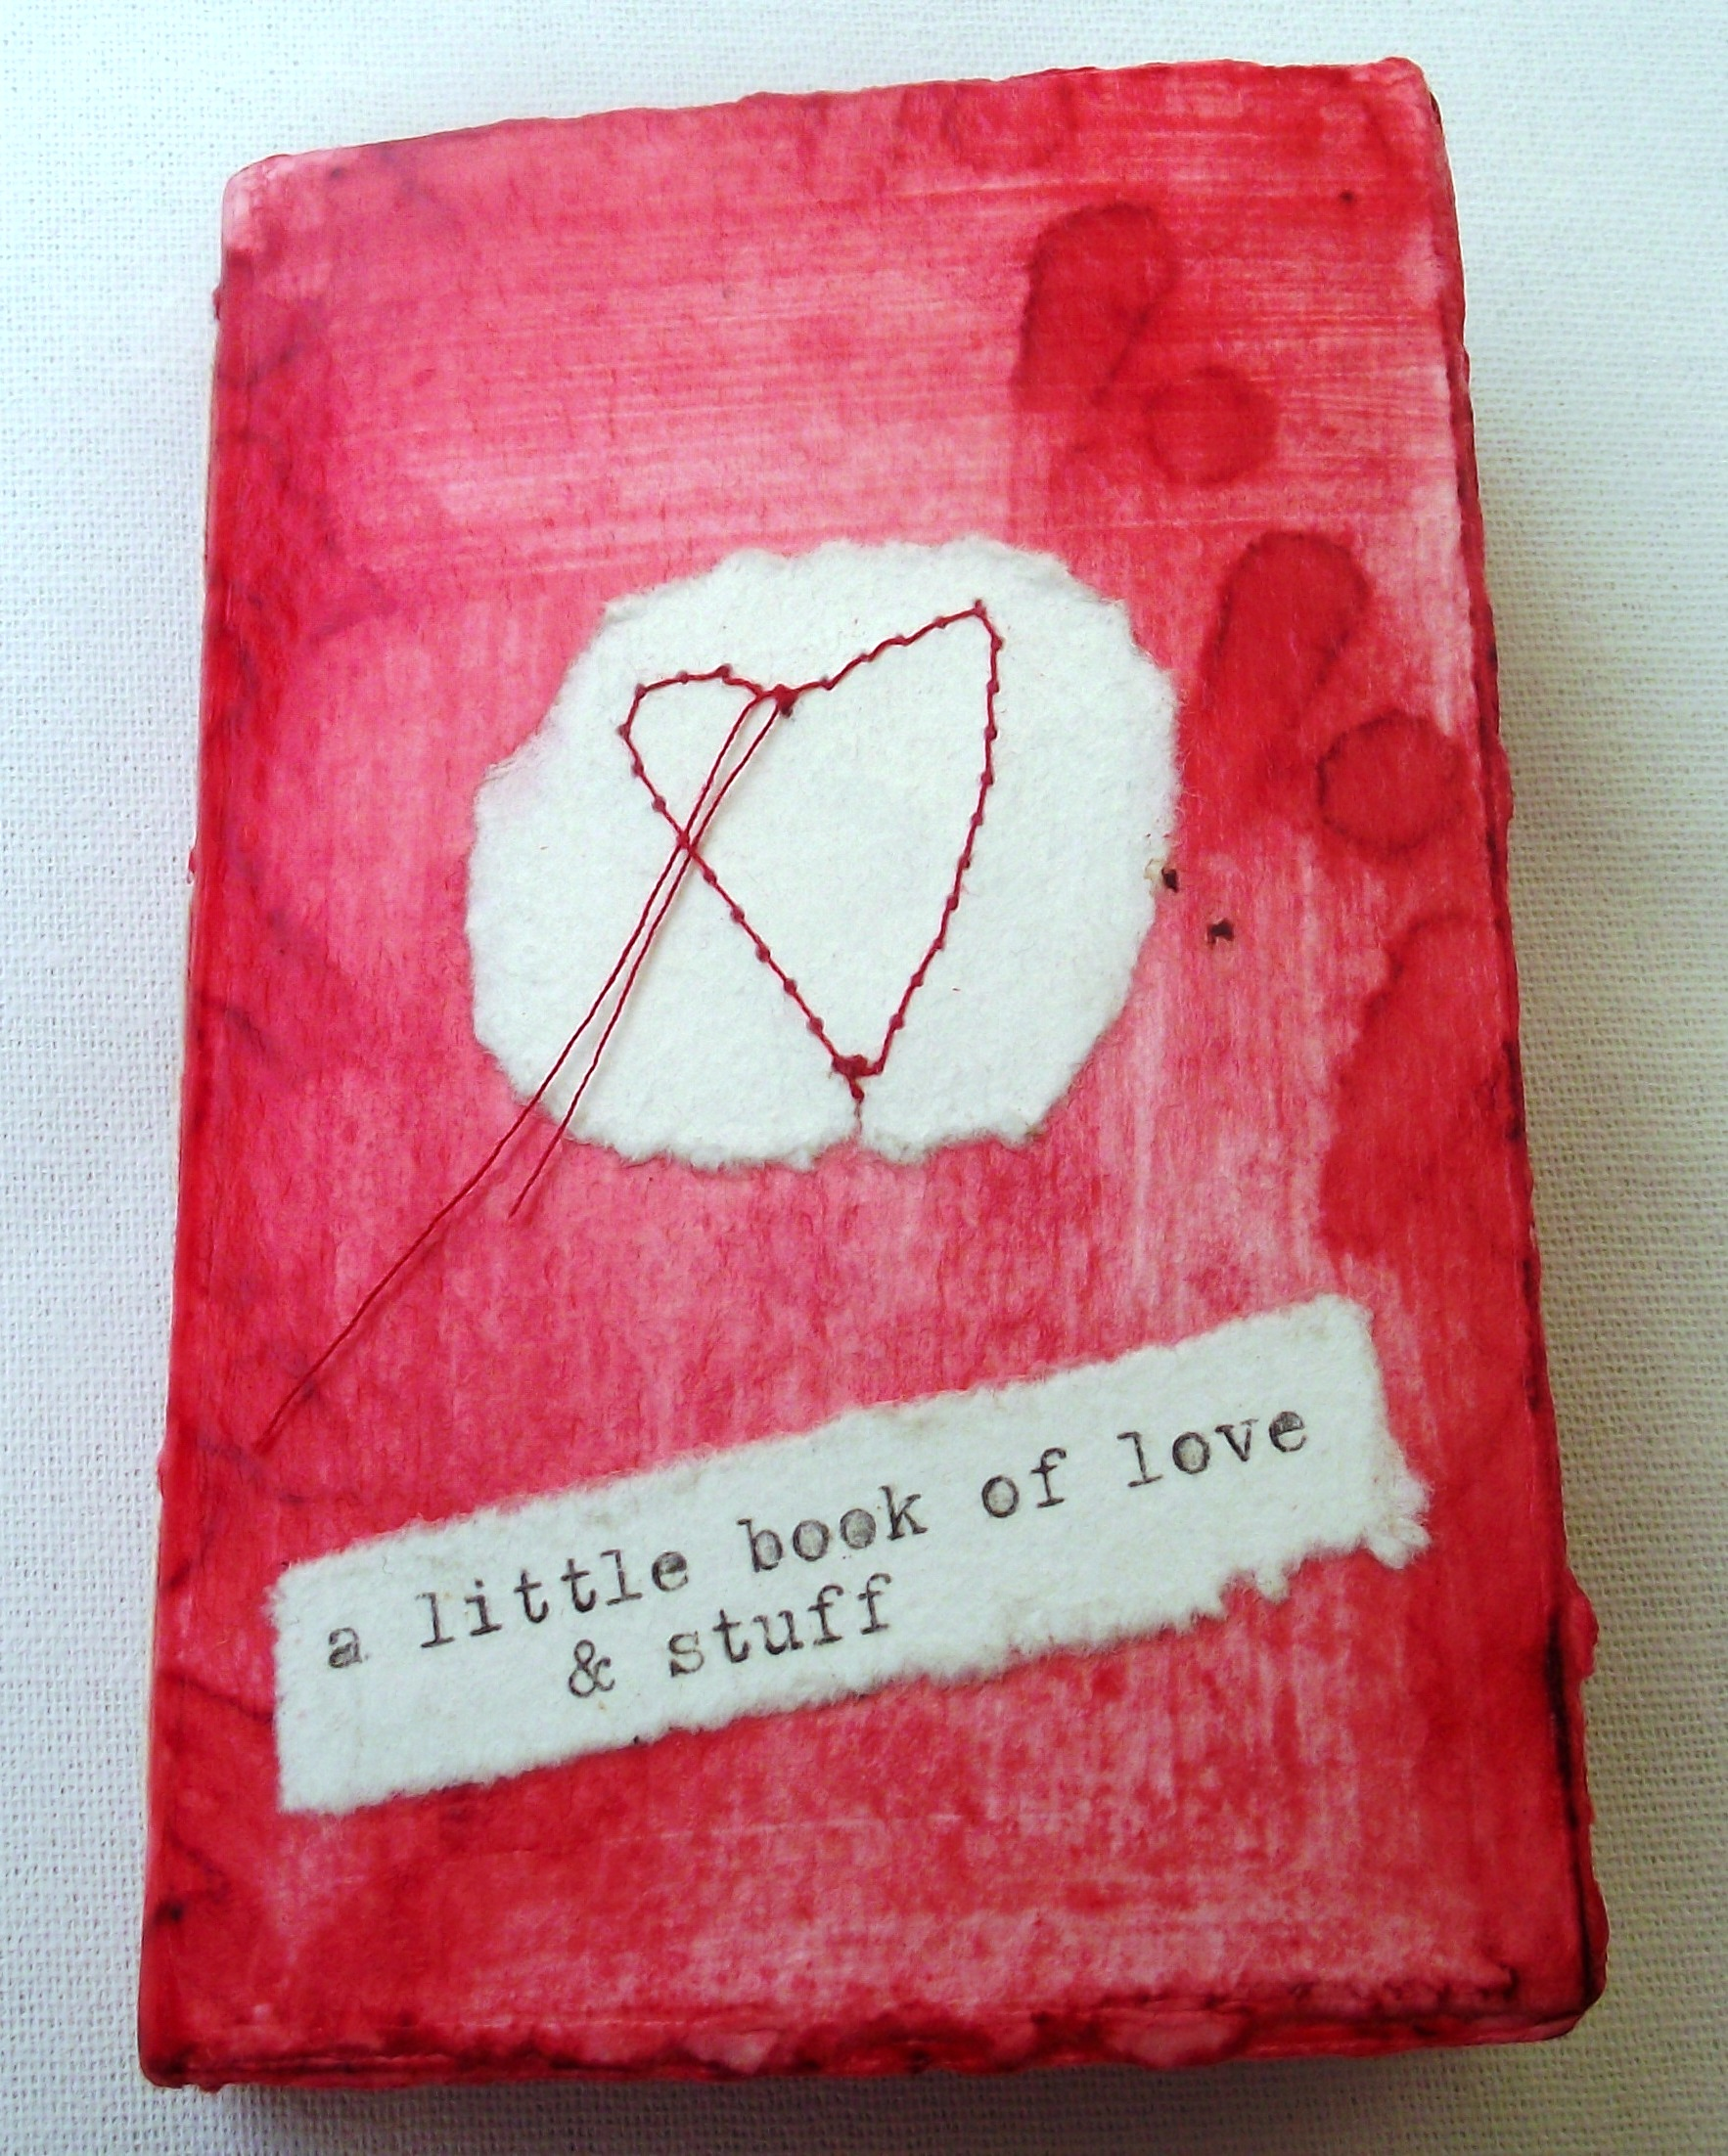 Book Art Studios - love & stuff